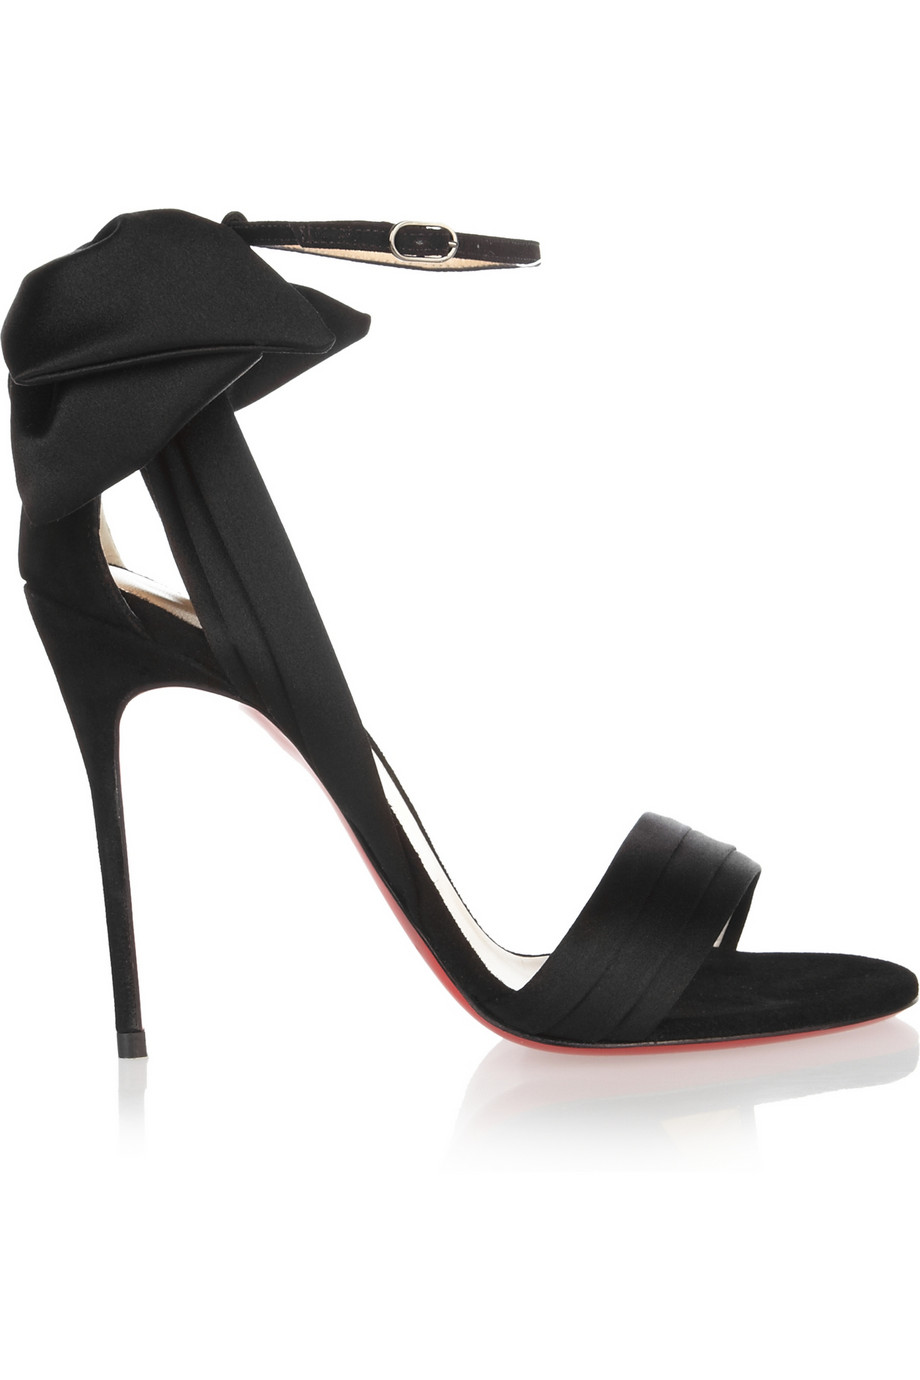 on sale ed4ee 9e69c Christian Louboutin Black Vampanodo Satin and Suede Sandals